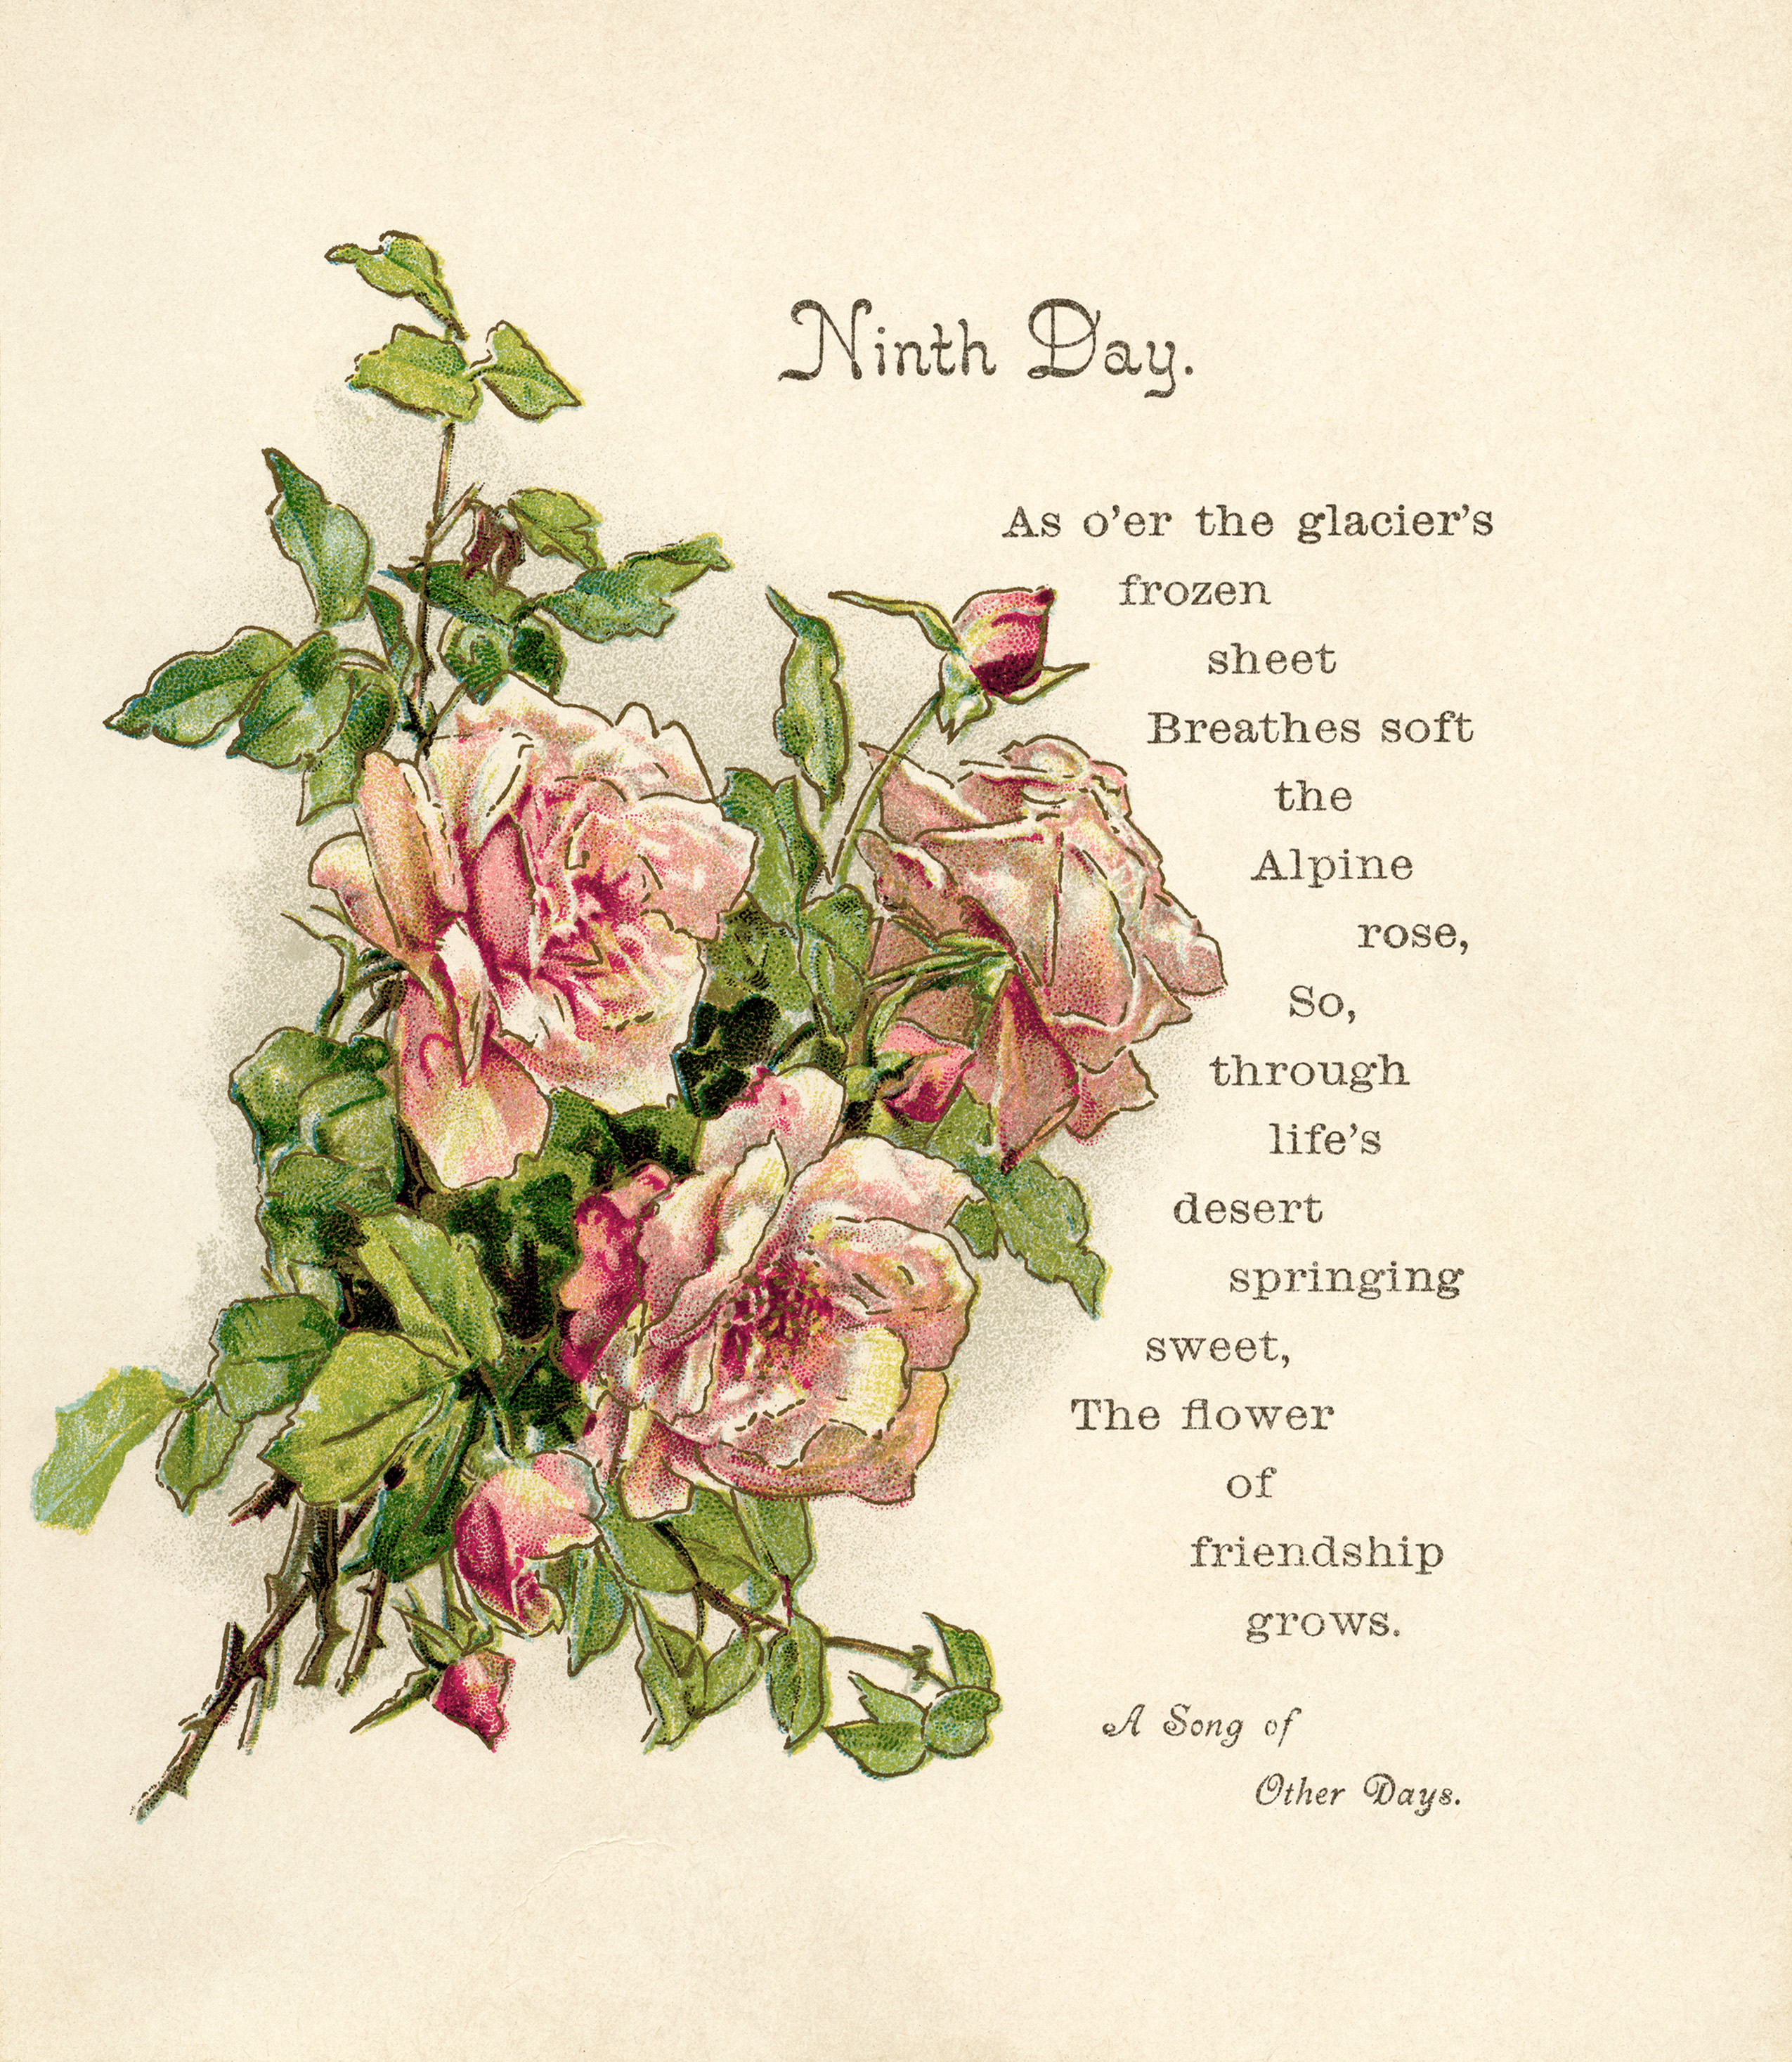 vintage roses clip art, old book page, ninth day poem, gems from holmes, pink roses image